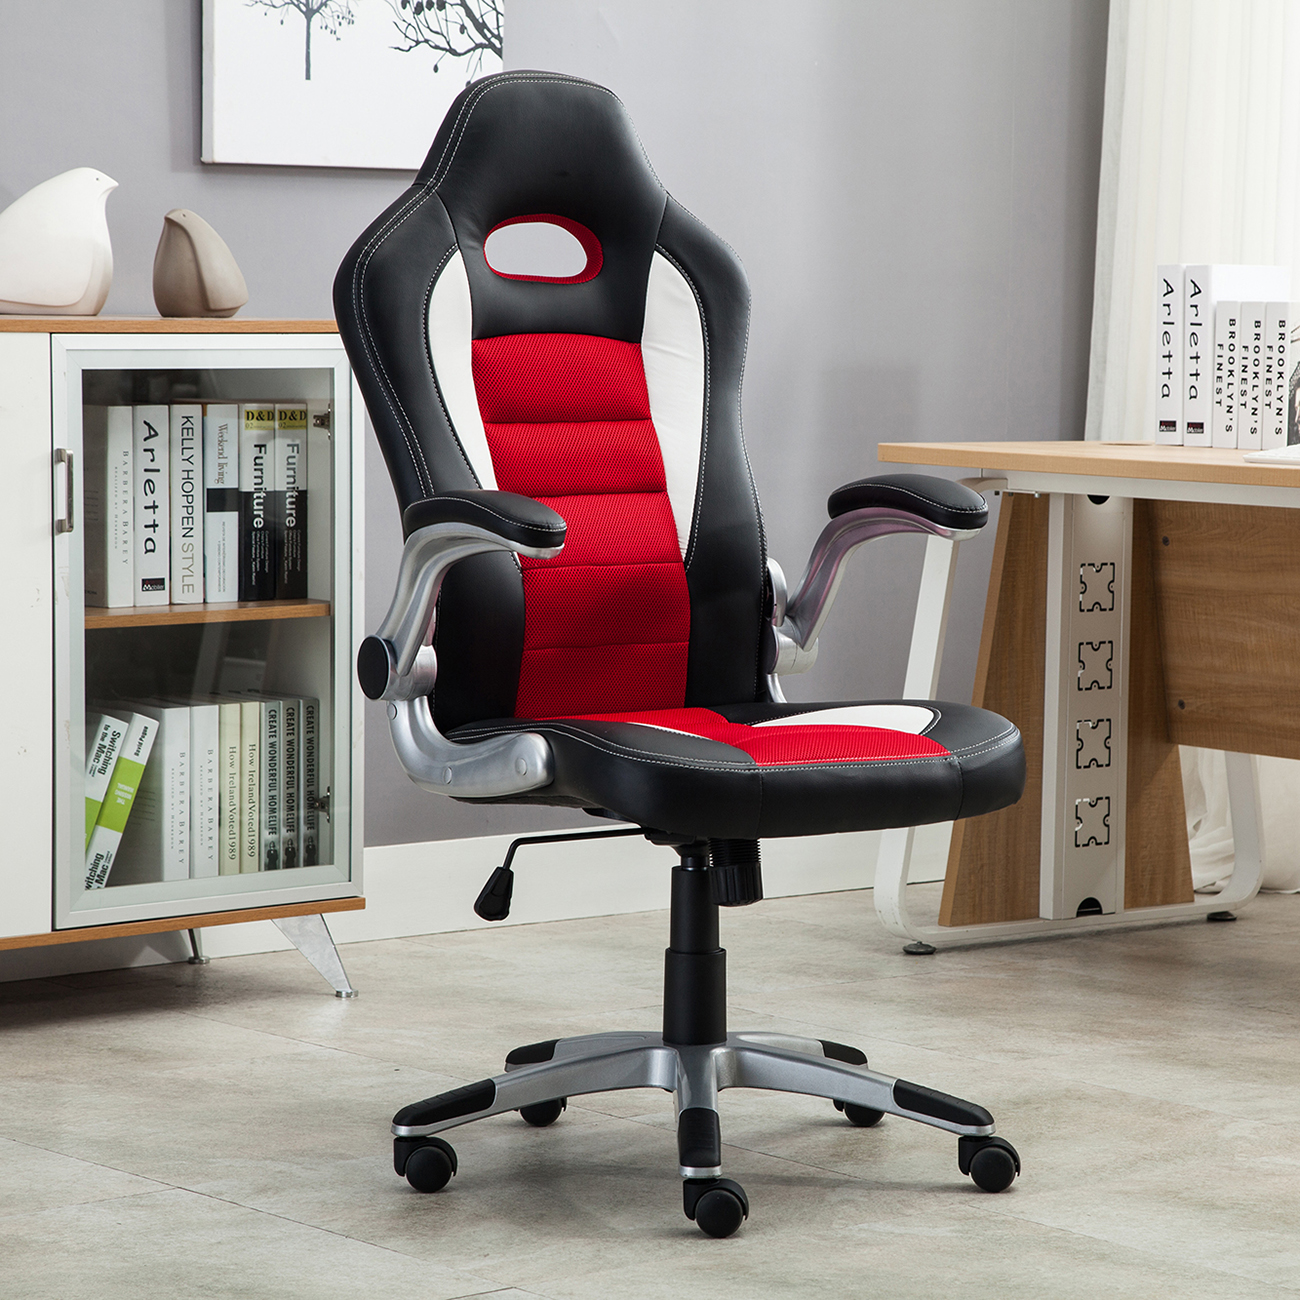 Office Racing Chair Bucket Seat High Back Ergonomic Office Racing Chair Bucket Seat High Back Ergonomic Gaming  . Office Racer Chair. Home Design Ideas